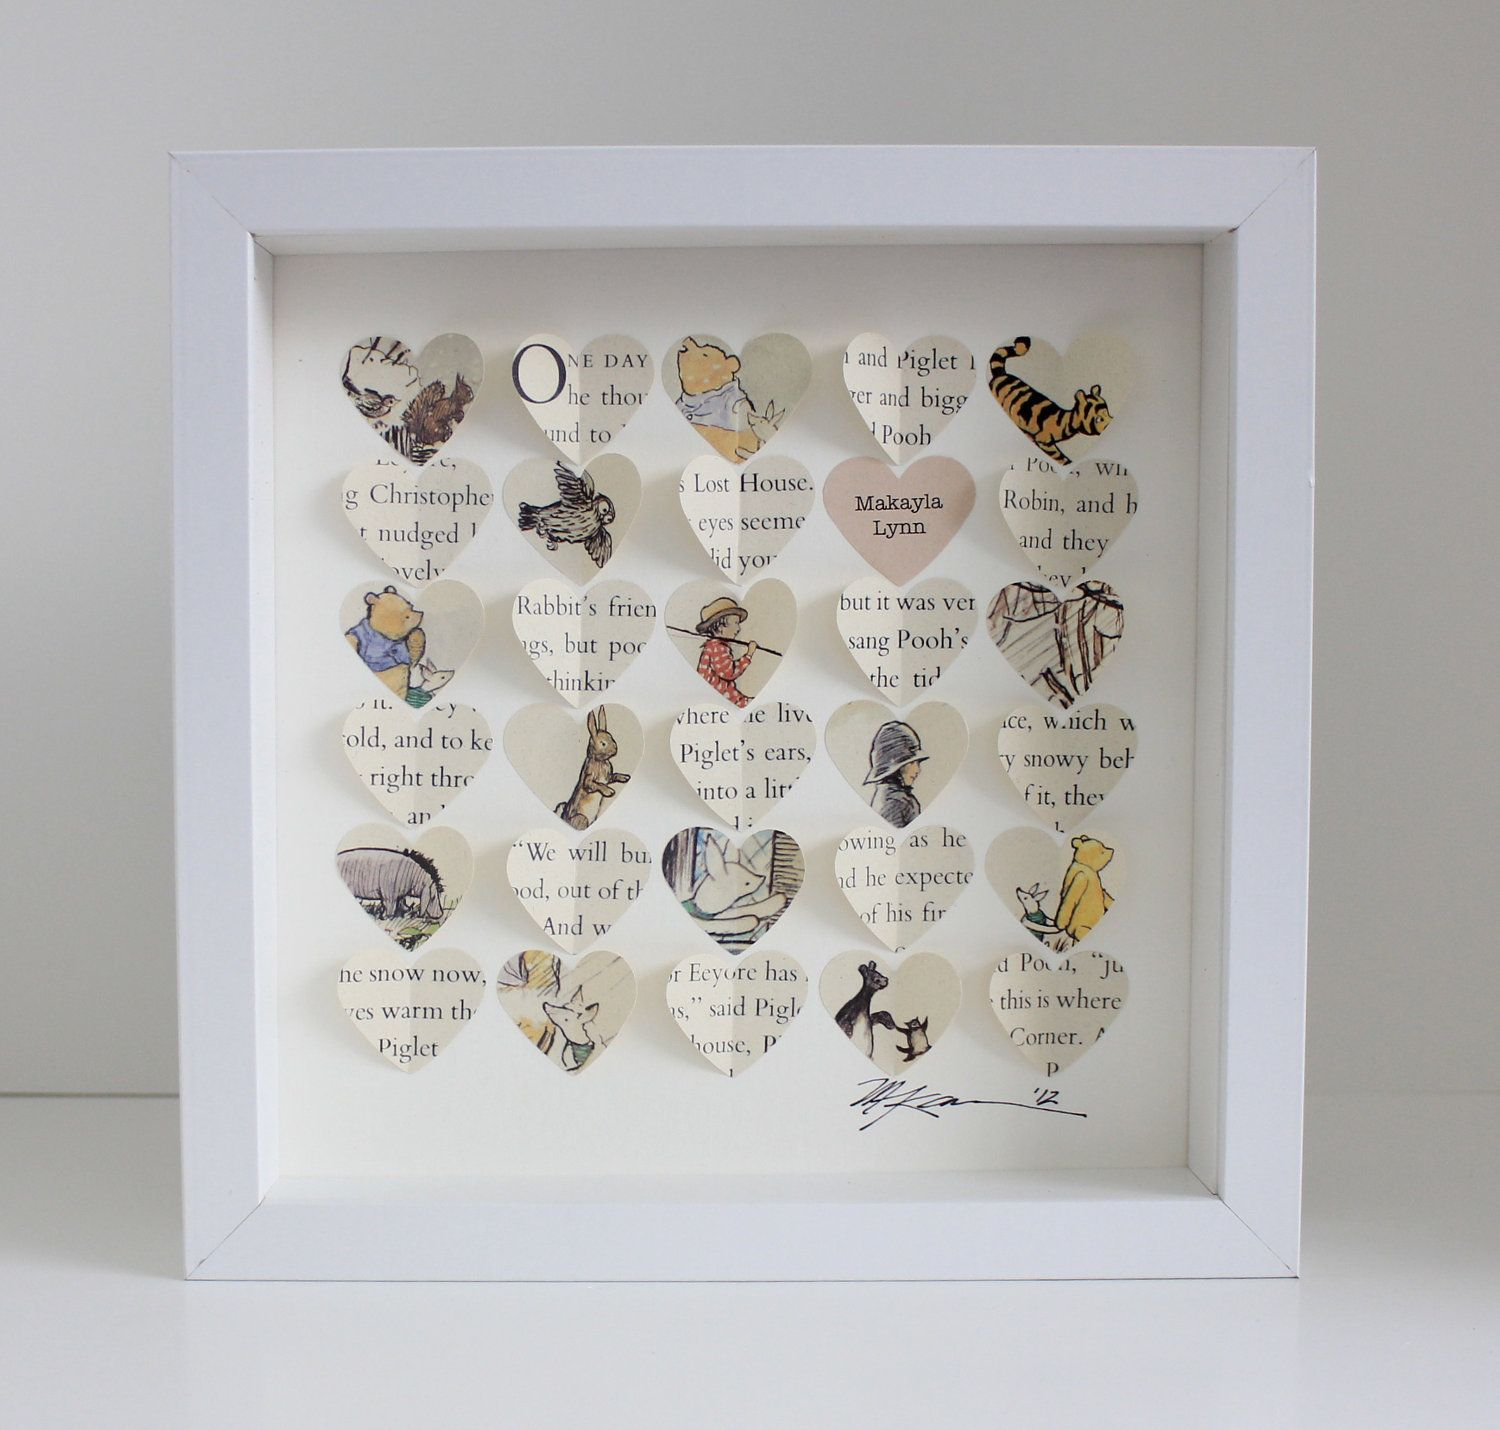 Baby gift winnie the pooh baby shower gift by celadonhome on etsy baby gift winnie the pooh baby shower gift personalized nursery art framed hearts personalized baptism gift or christening gift solutioingenieria Images